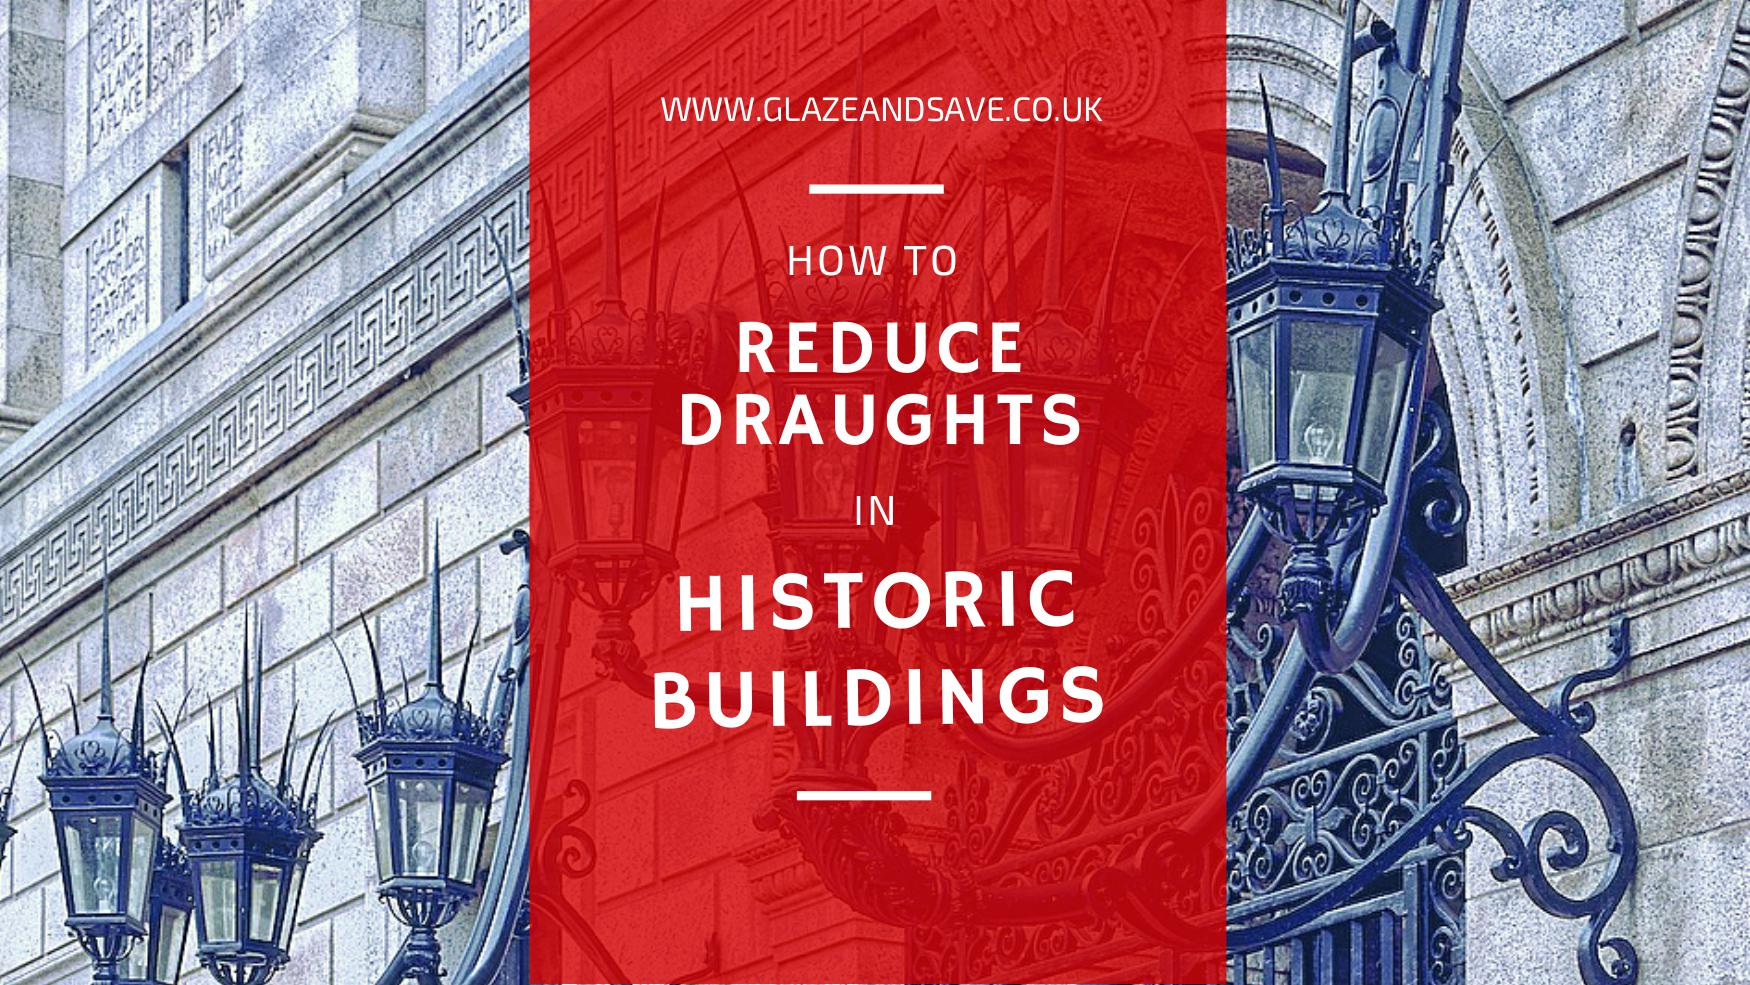 How to reduce draughts in historic old buildings Glaze & Save InvisiTherm bespoke magnetic secondary glazing in scotland